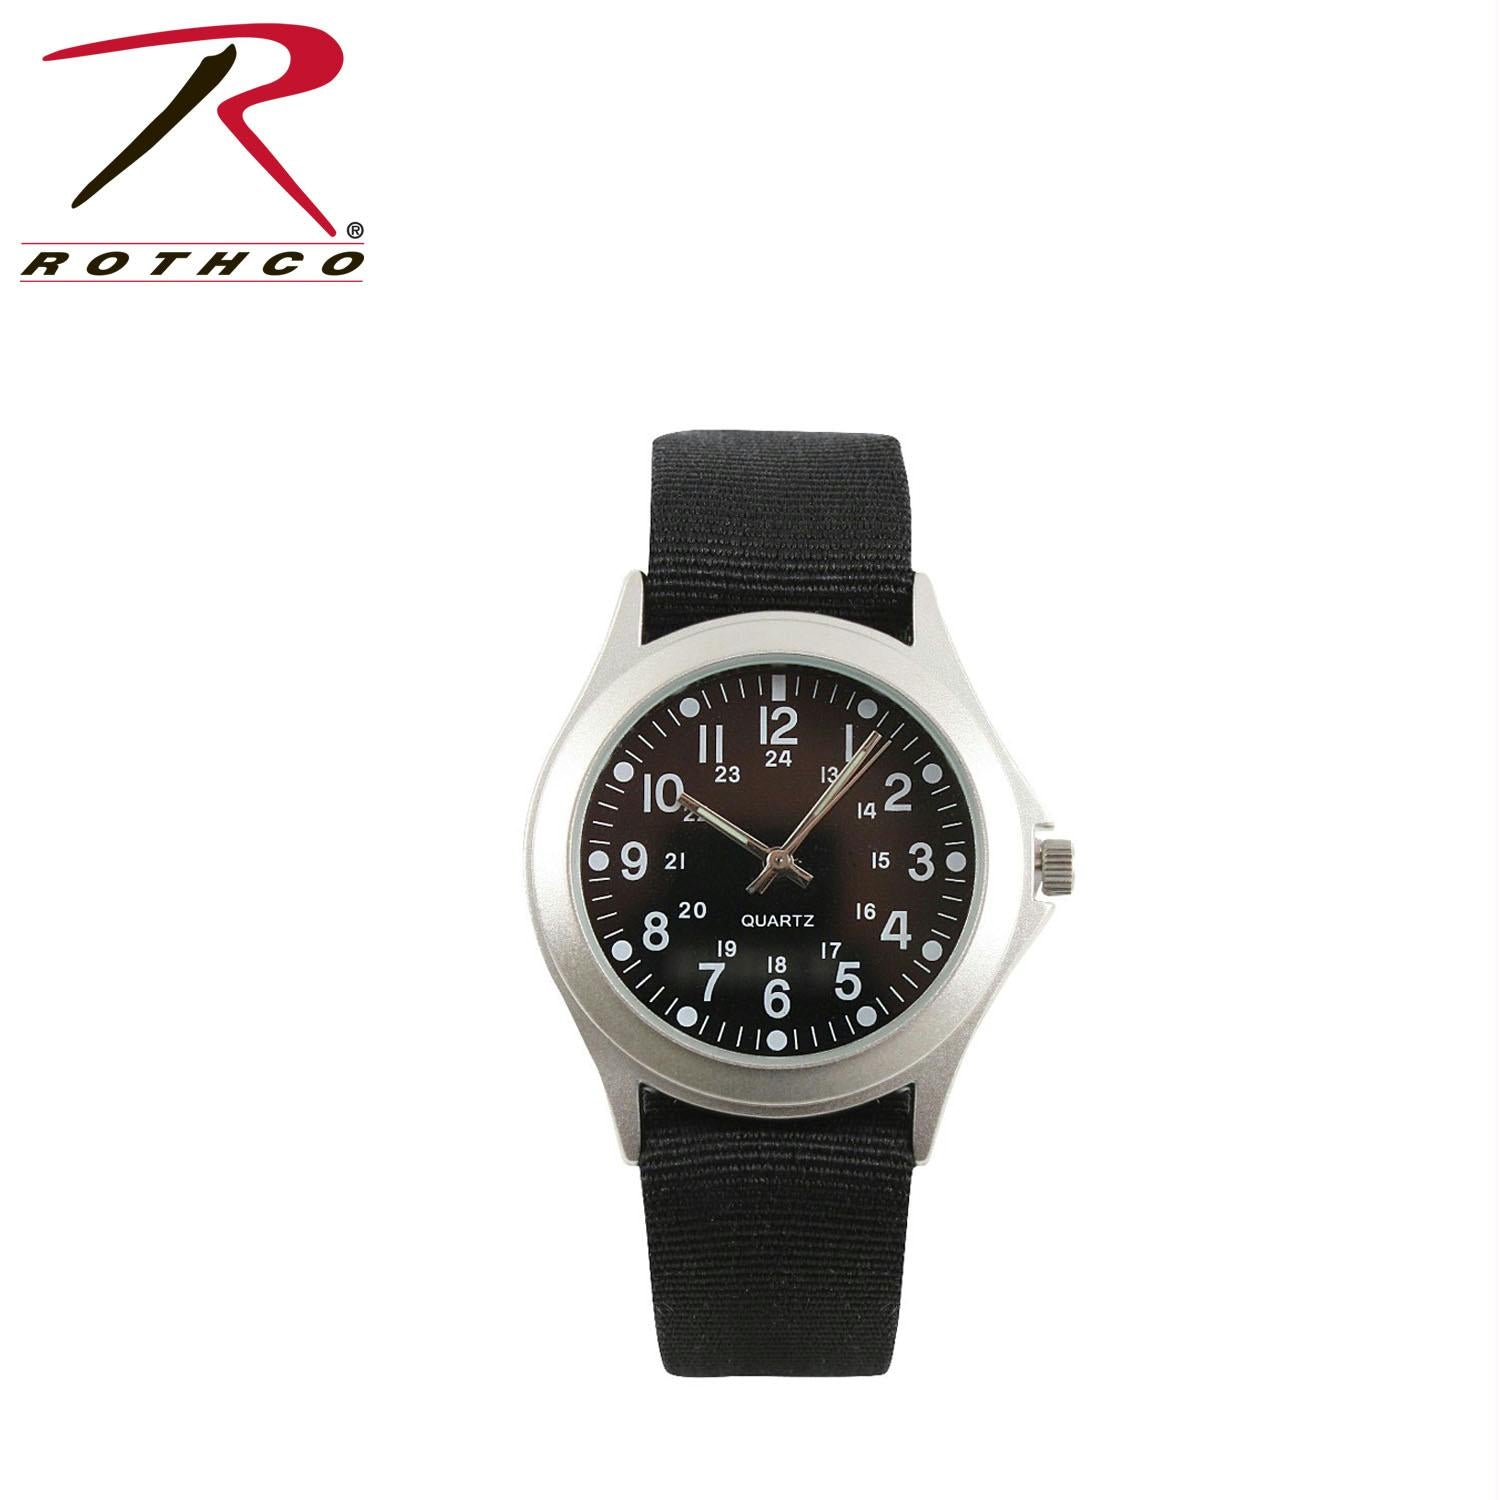 Rothco Military Style Quartz Watch - Black